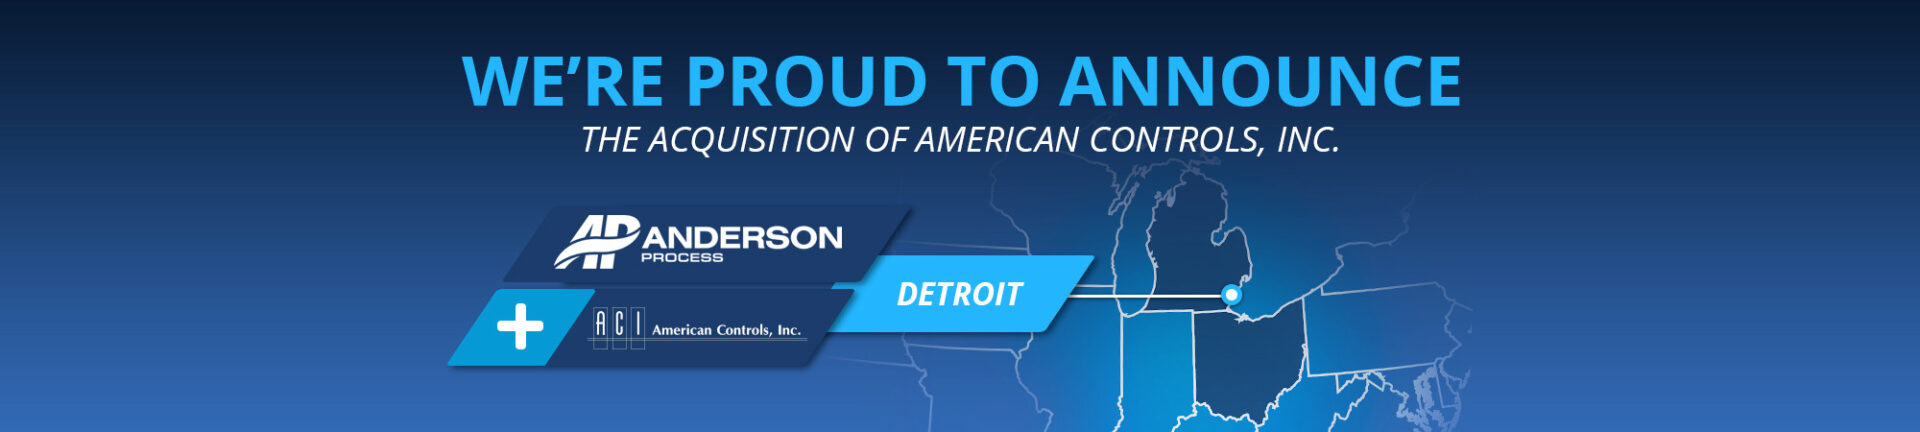 Anderson Process acquires American Controls, Inc.